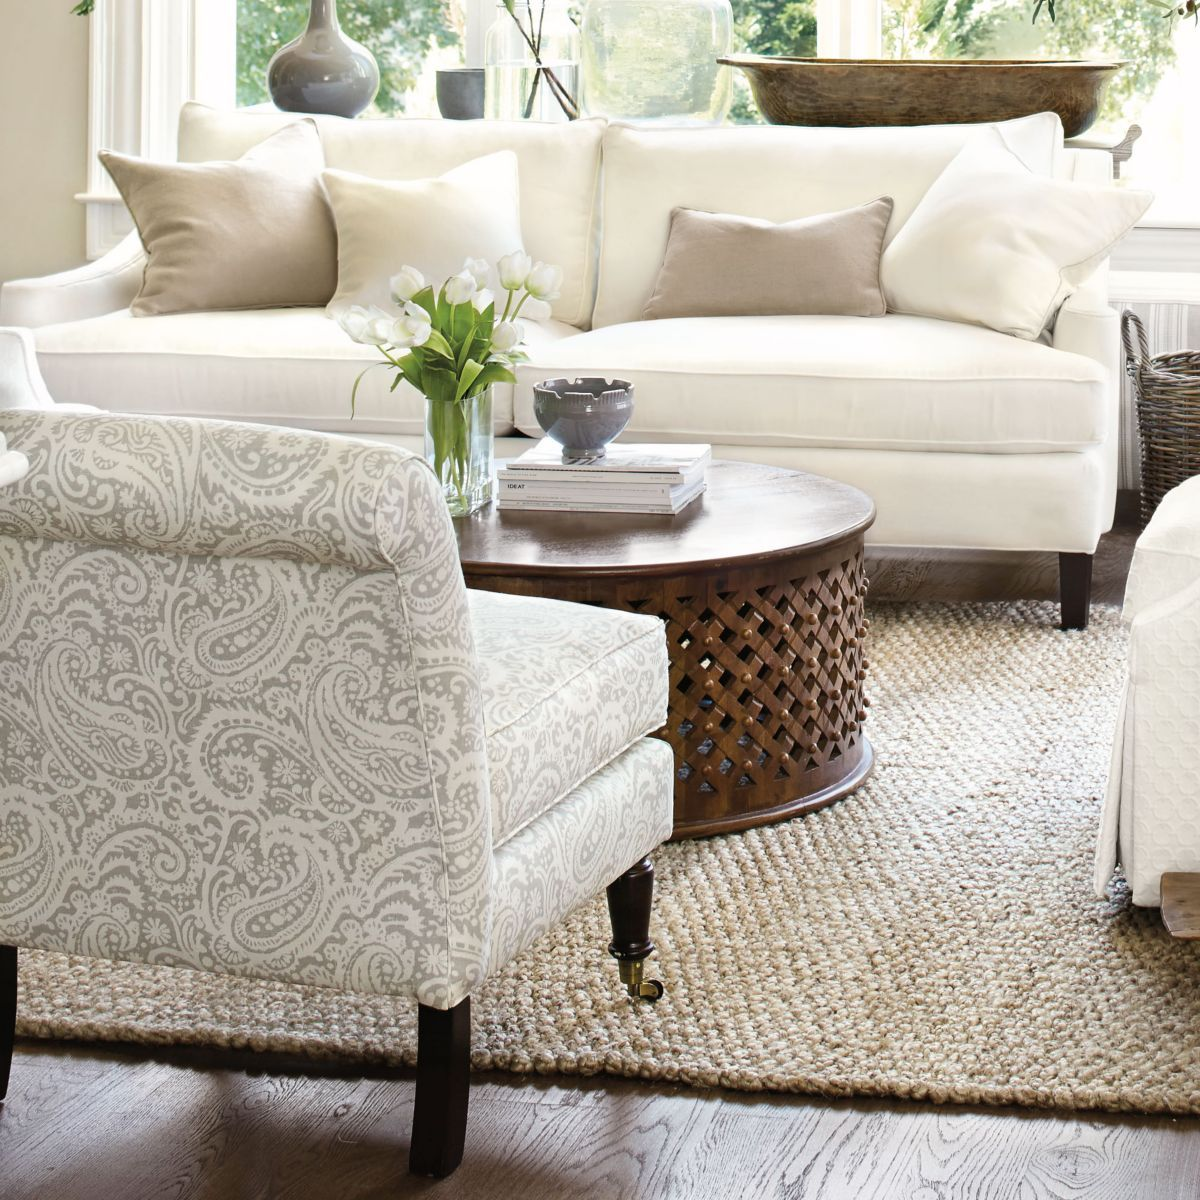 ballard designs dining chair cushions wheel lifts shop by category furniture interiors